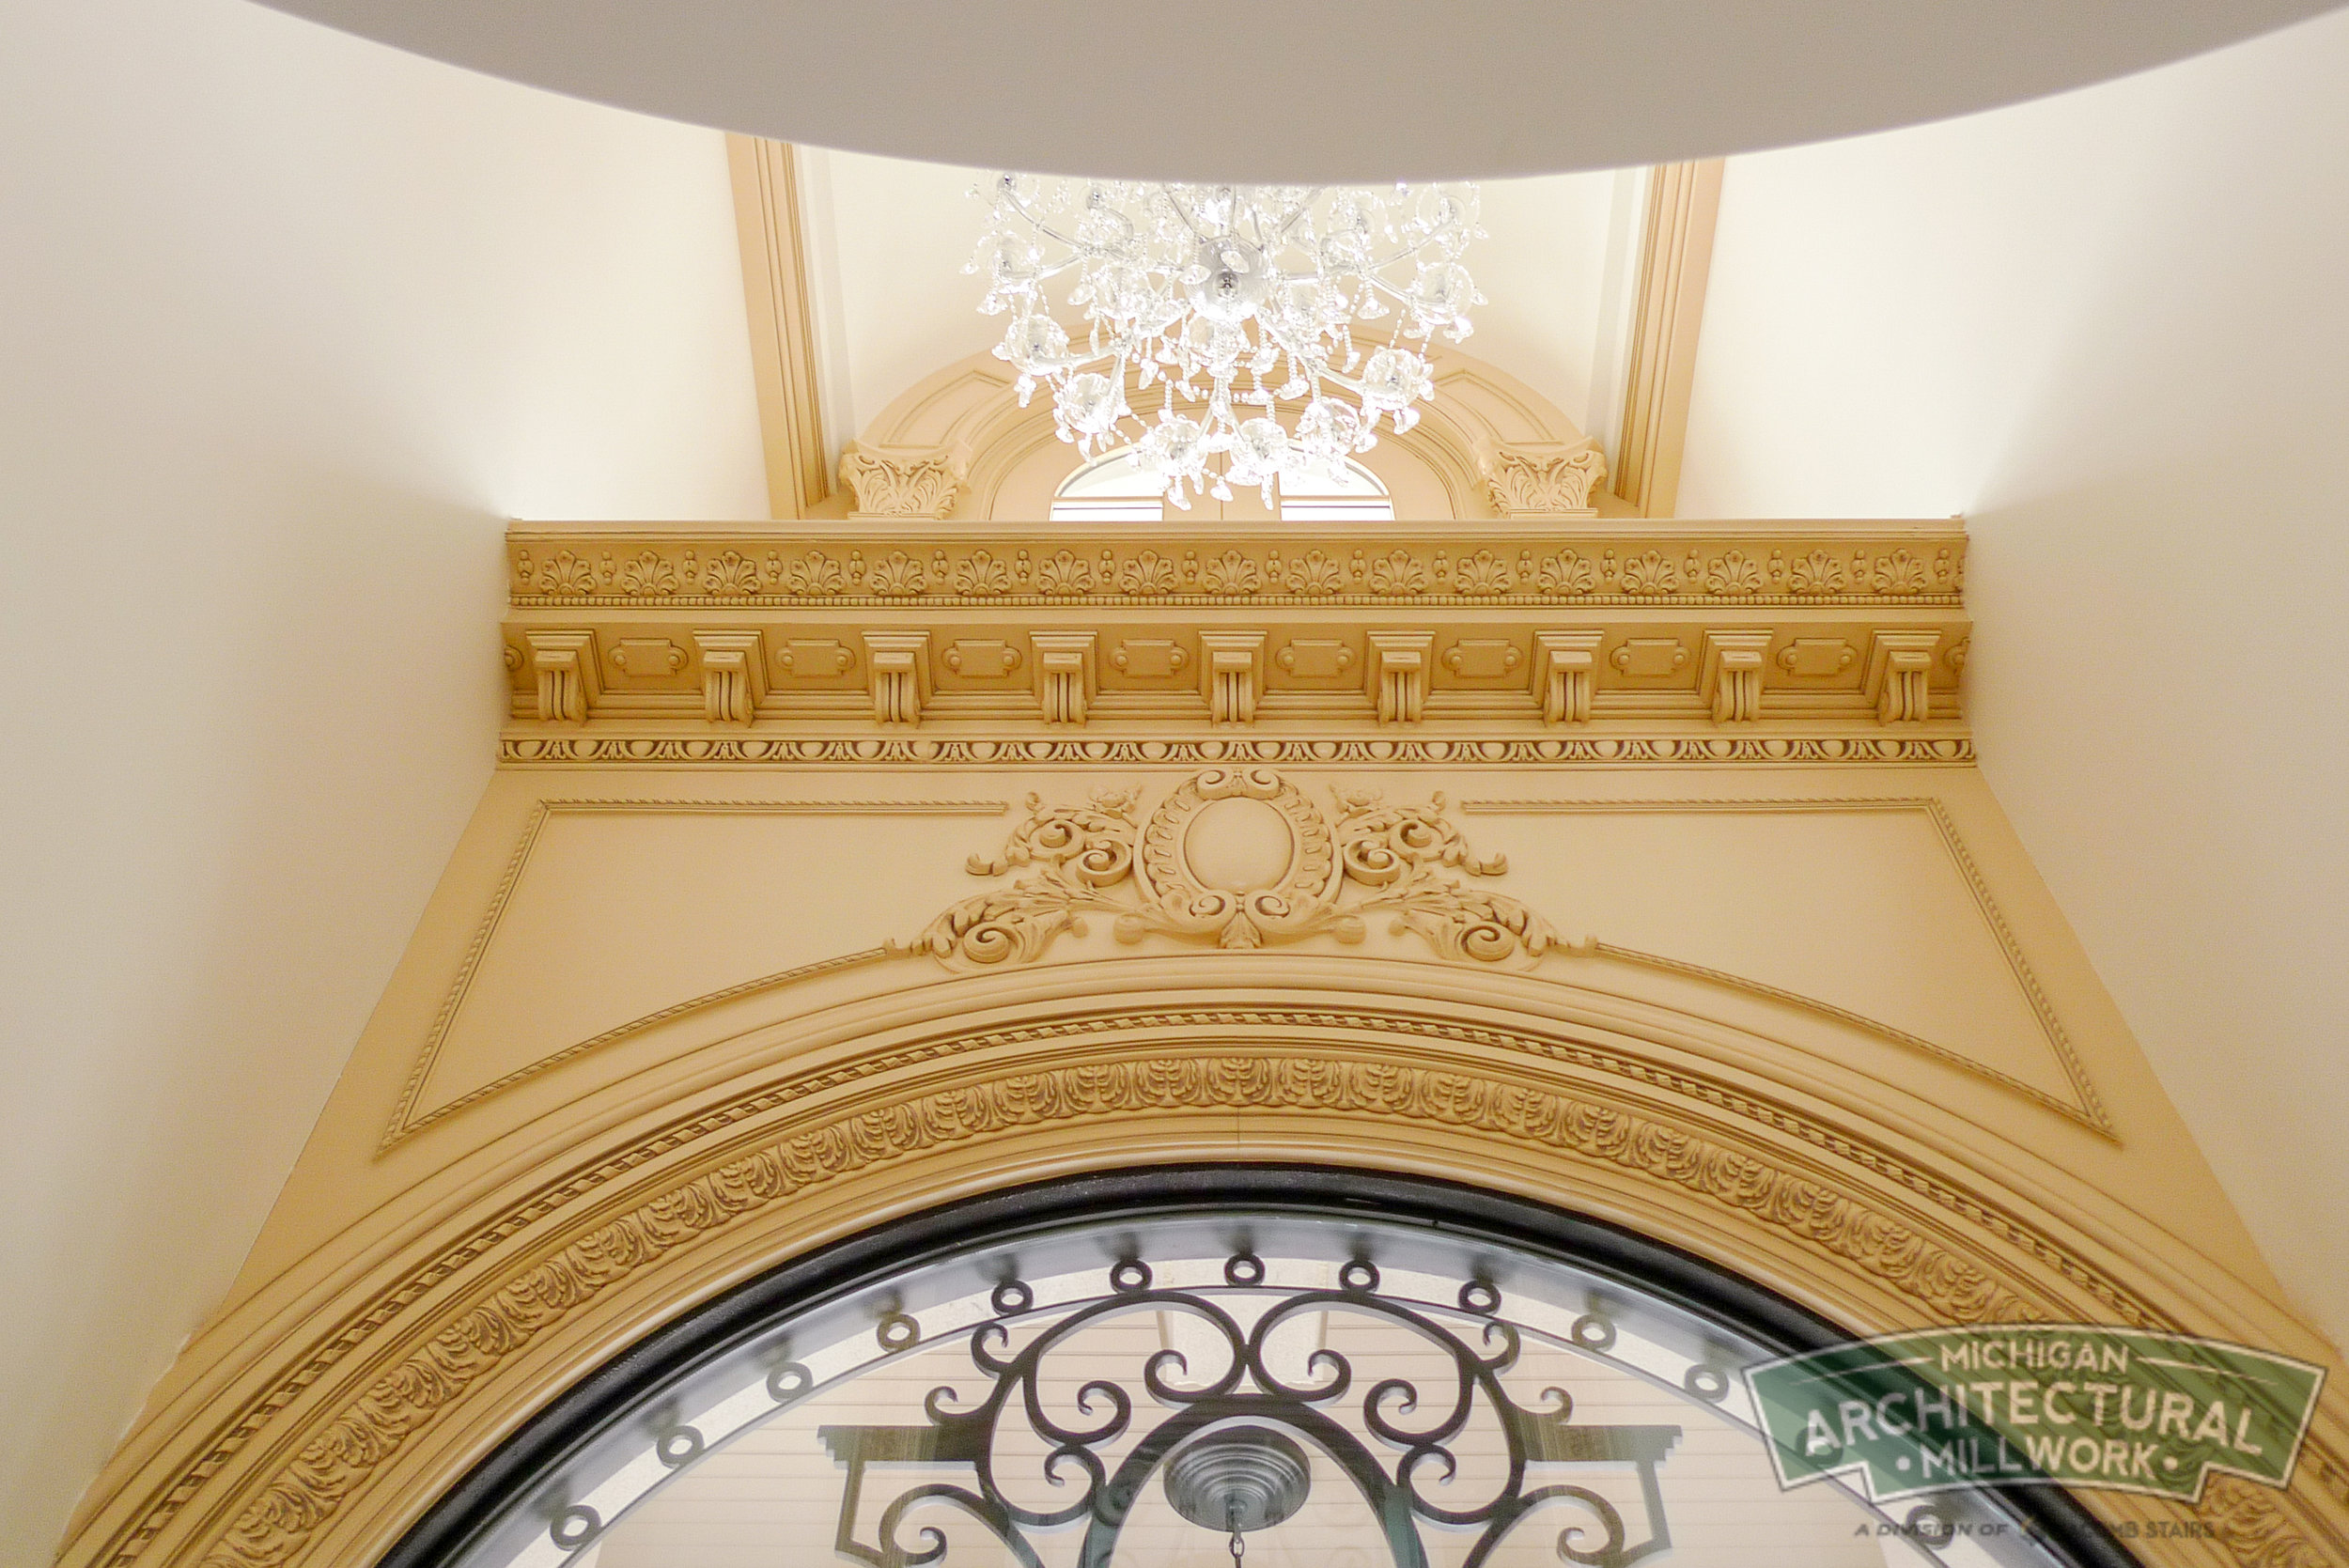 Michigan Architectural Millwork- Moulding and Millwork Photo-156.jpg